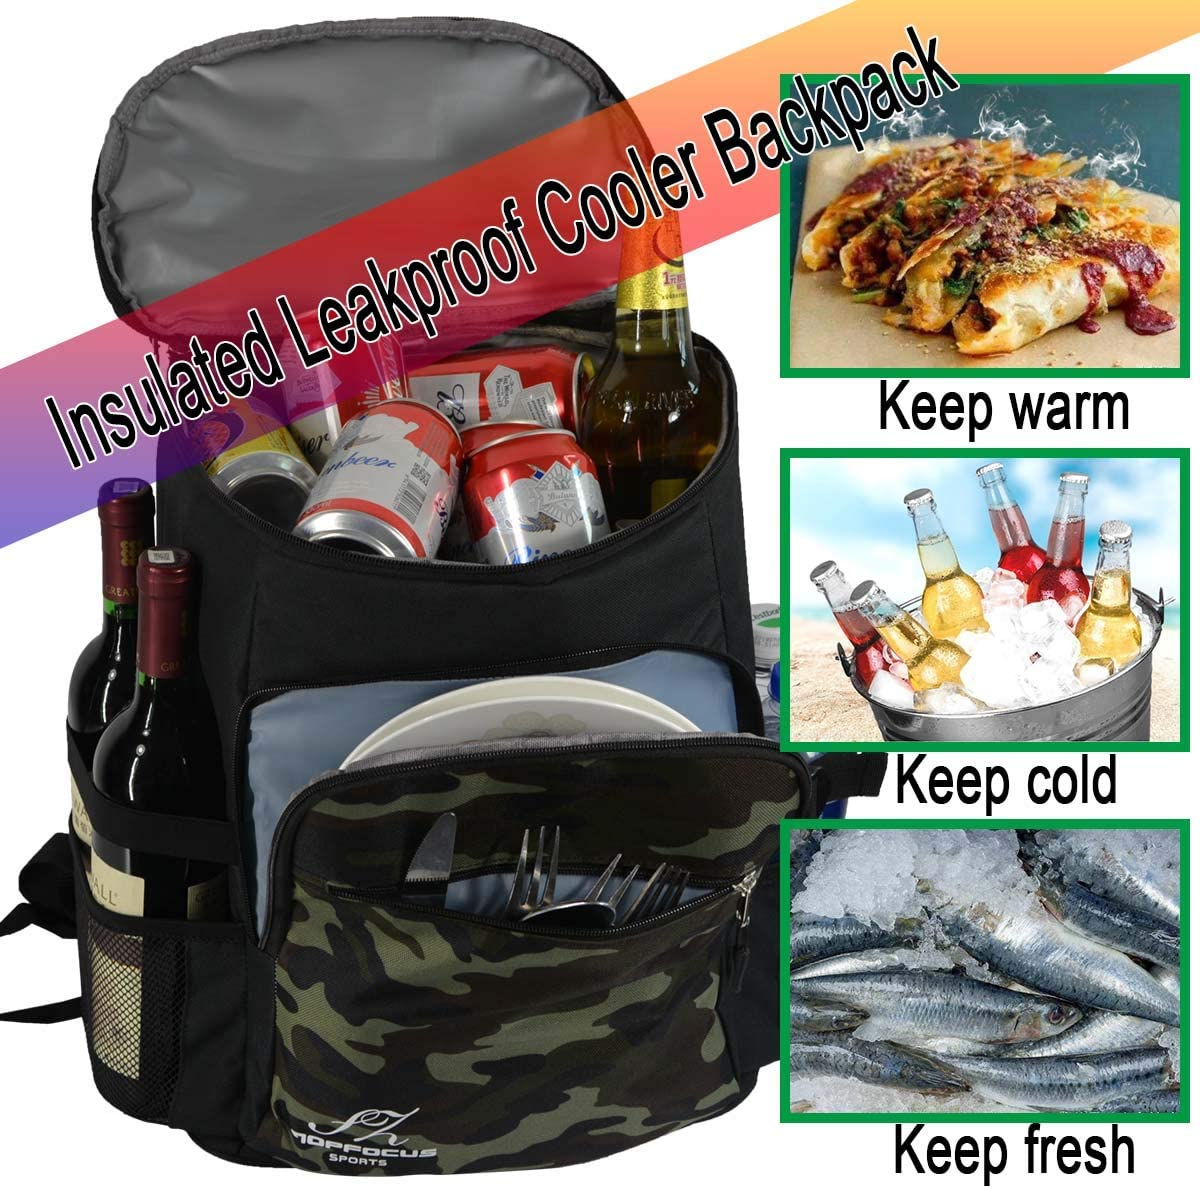 JIRUIWEN Leakproof Insulated Backpack Cooler Roomy Hiking Daypacks Waterproof Cooler Bag for Work Children/'s Lunch Picnic Event Trip Beach Sporting